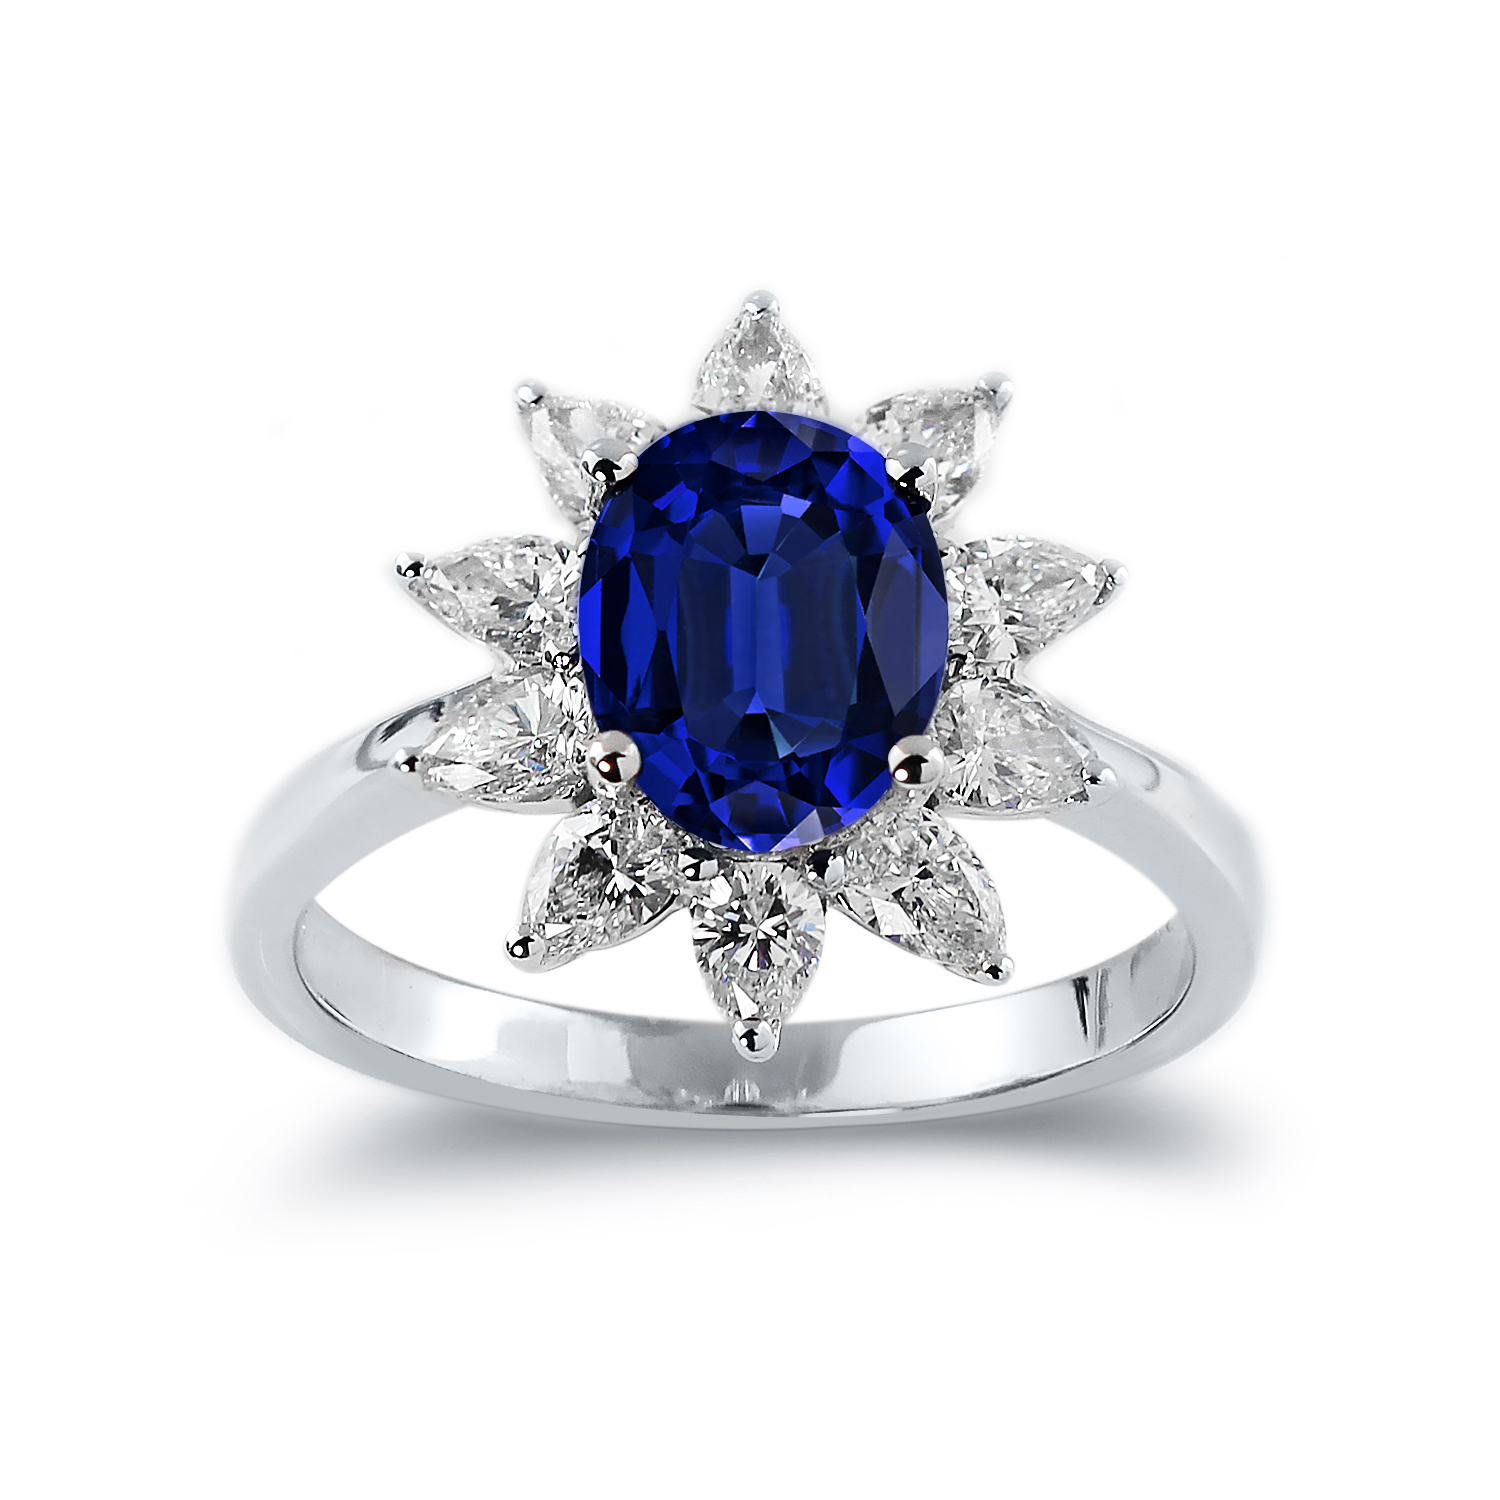 Delilah Princess Diana Inspired Halo Blue Sapphire Diamond Ring in 18K White Gold With 2 1/3 carat Oval Blue Sapphire